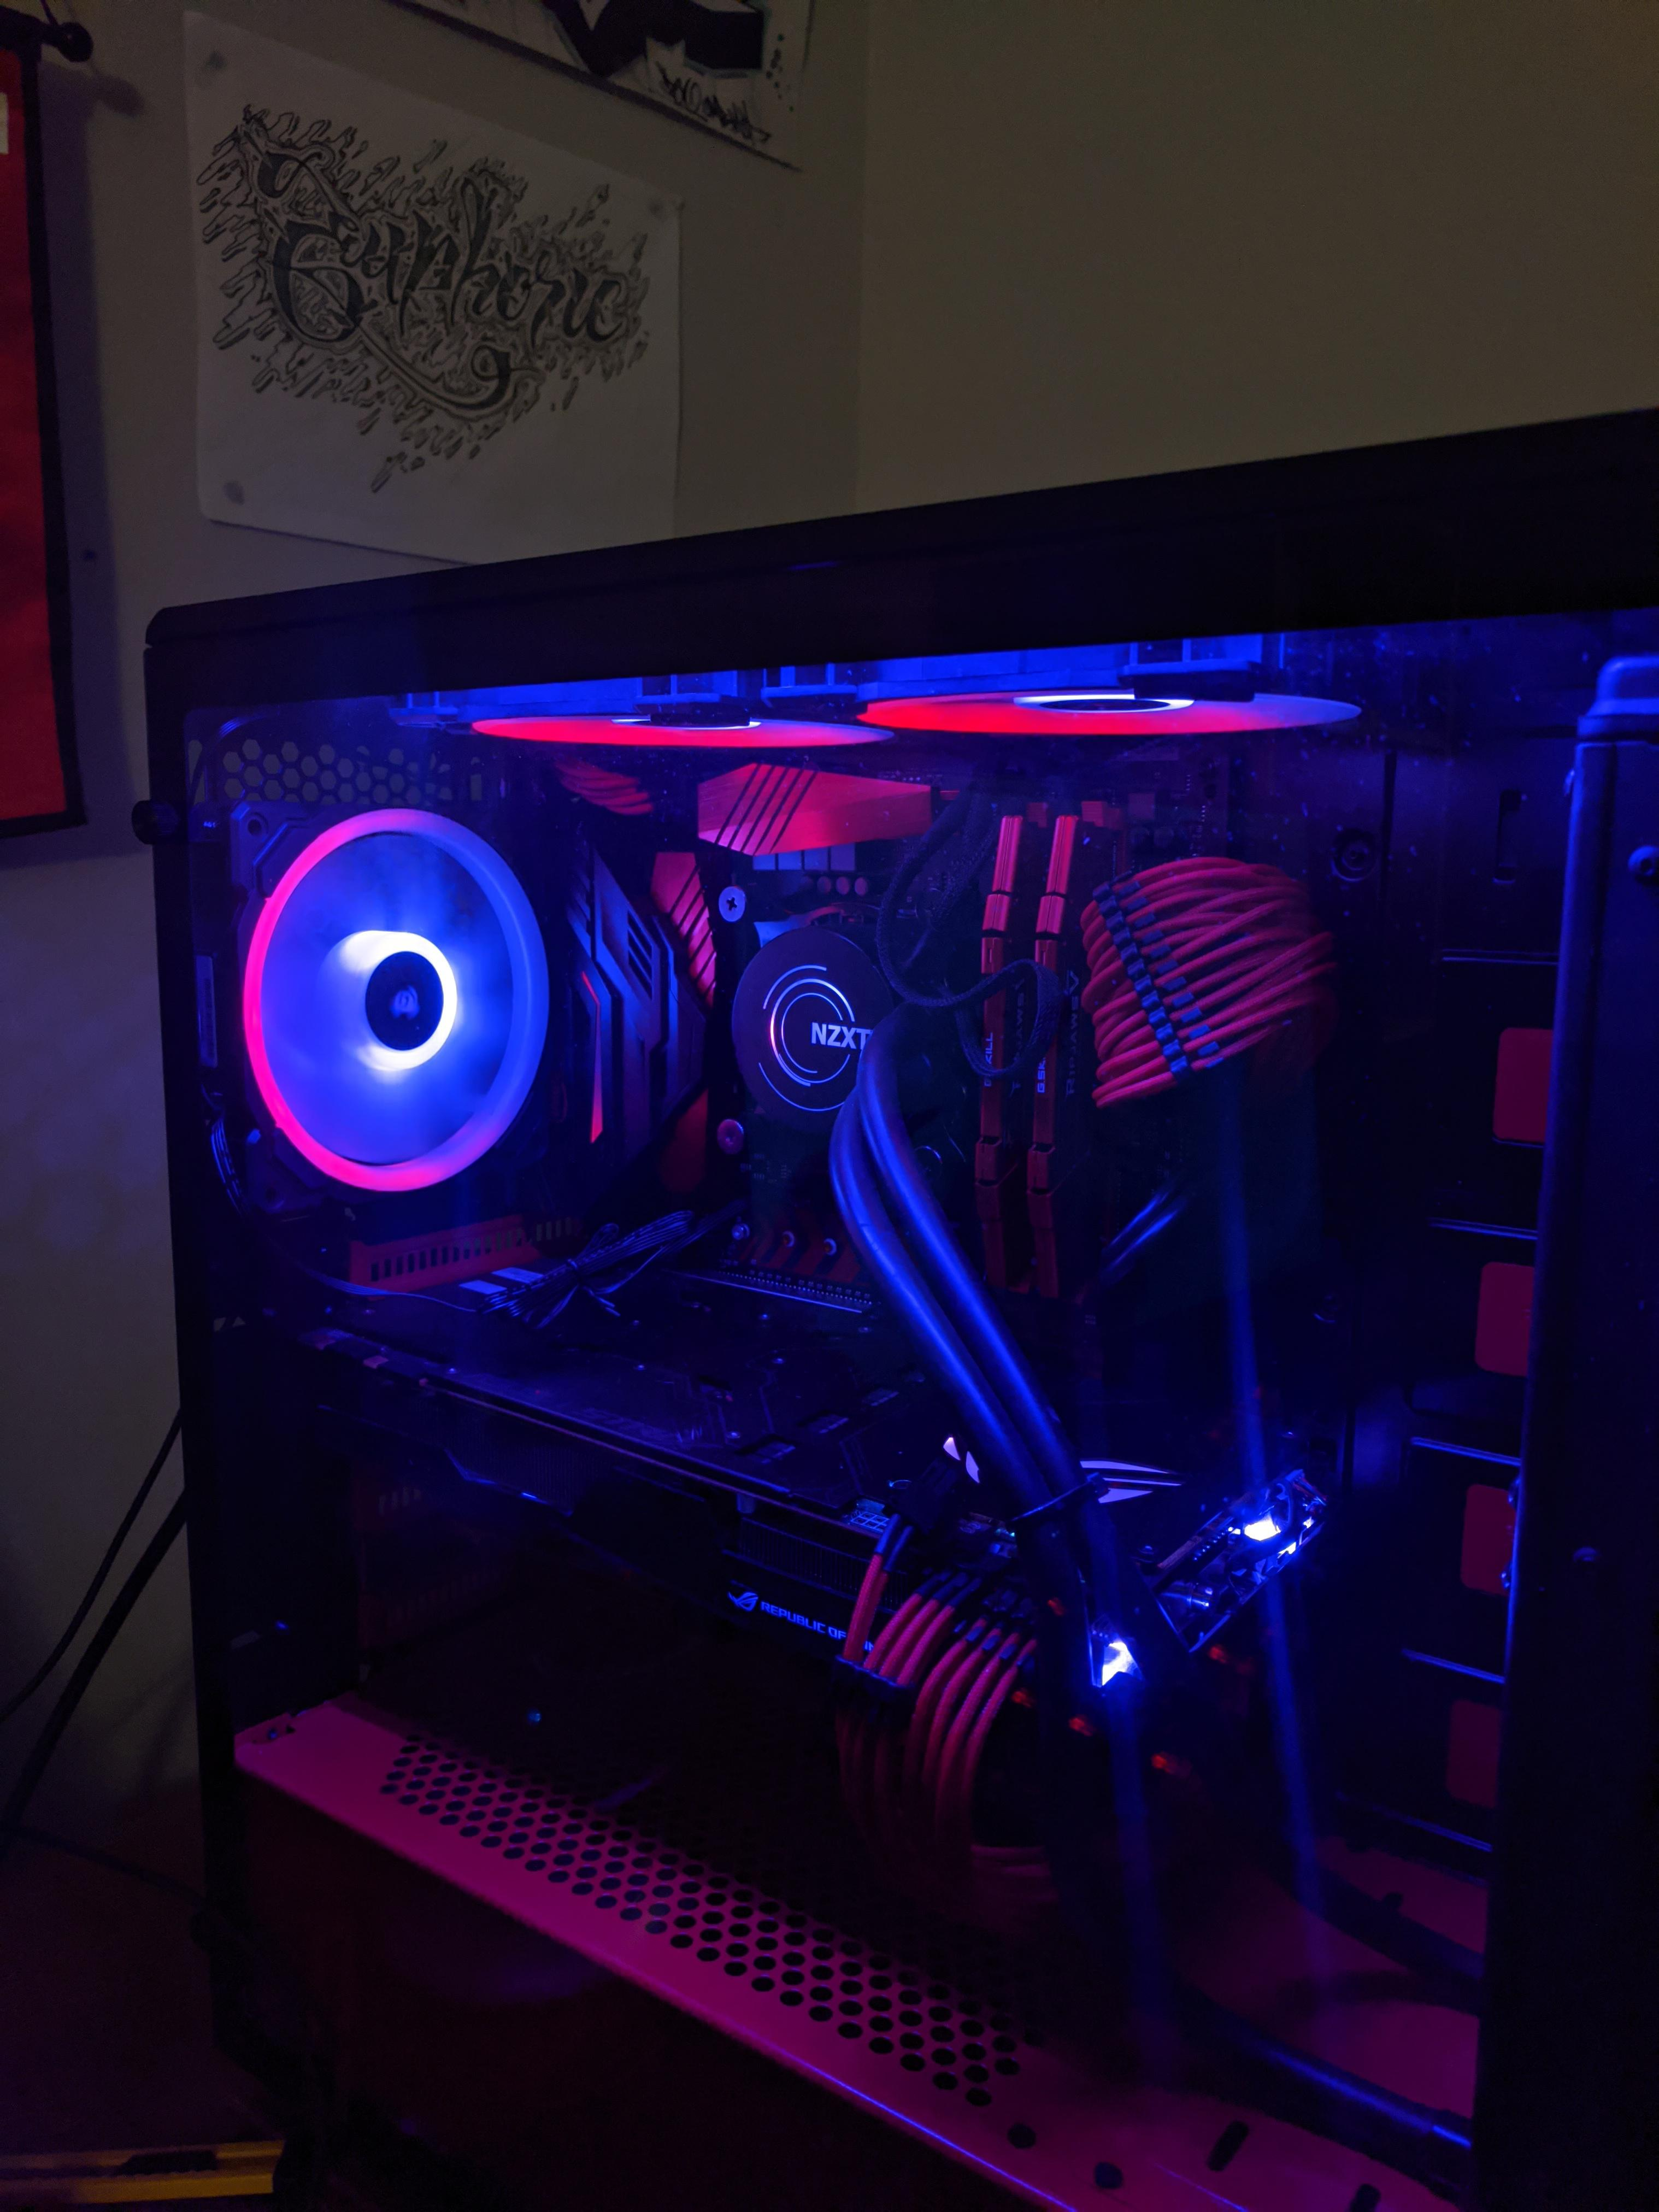 How To Install Corsair Rgb Profiles : install, corsair, profiles, Settings, Guy's, Fans?, There, Shift, Purple, Smoothly?, Corsair